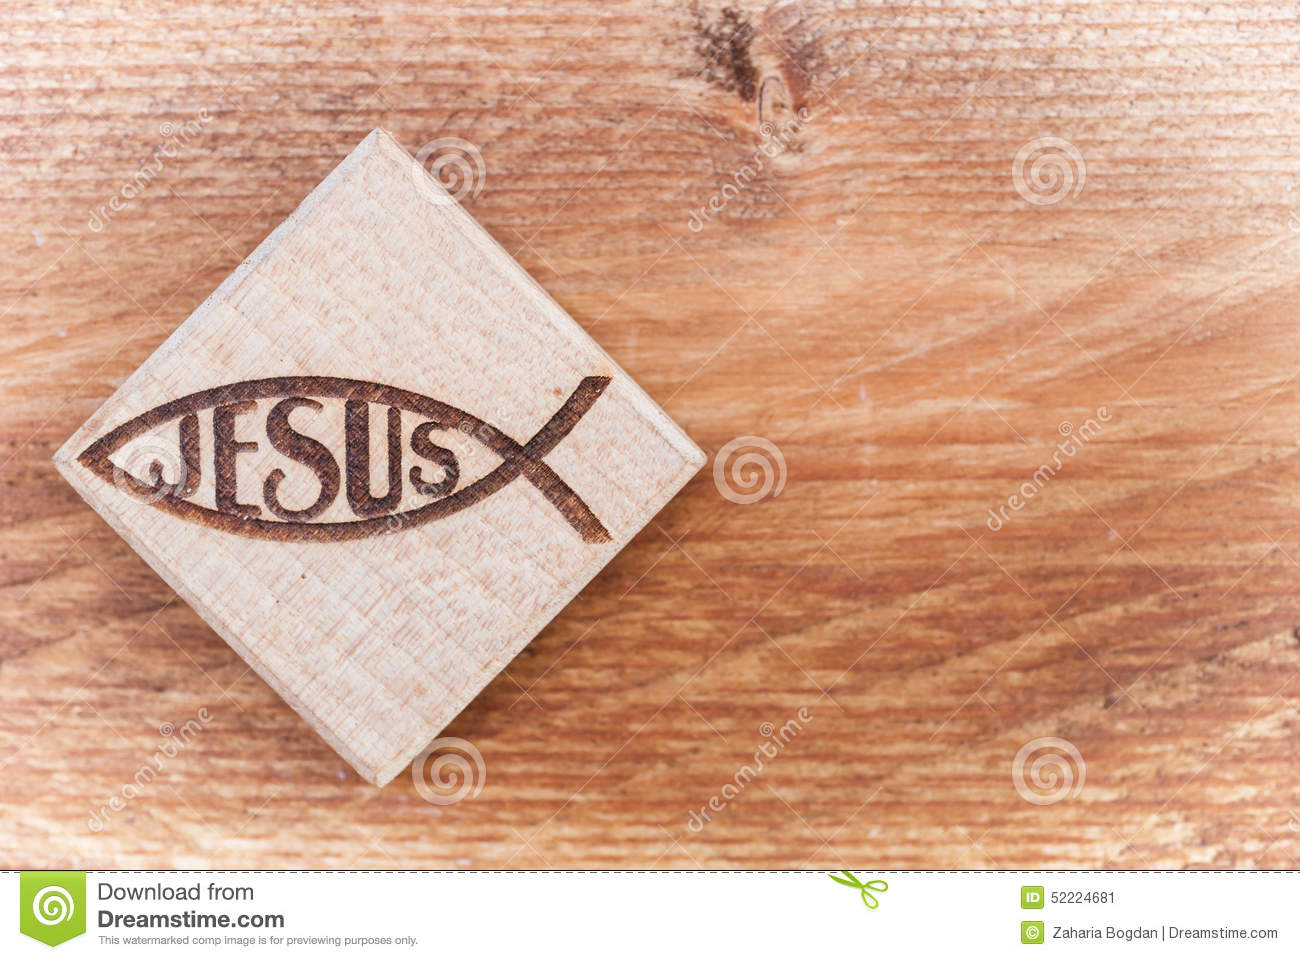 Christian fish stock images 505 photos christian fish symbol carved in wood on white vintage wooden background shallow depth of field biocorpaavc Gallery